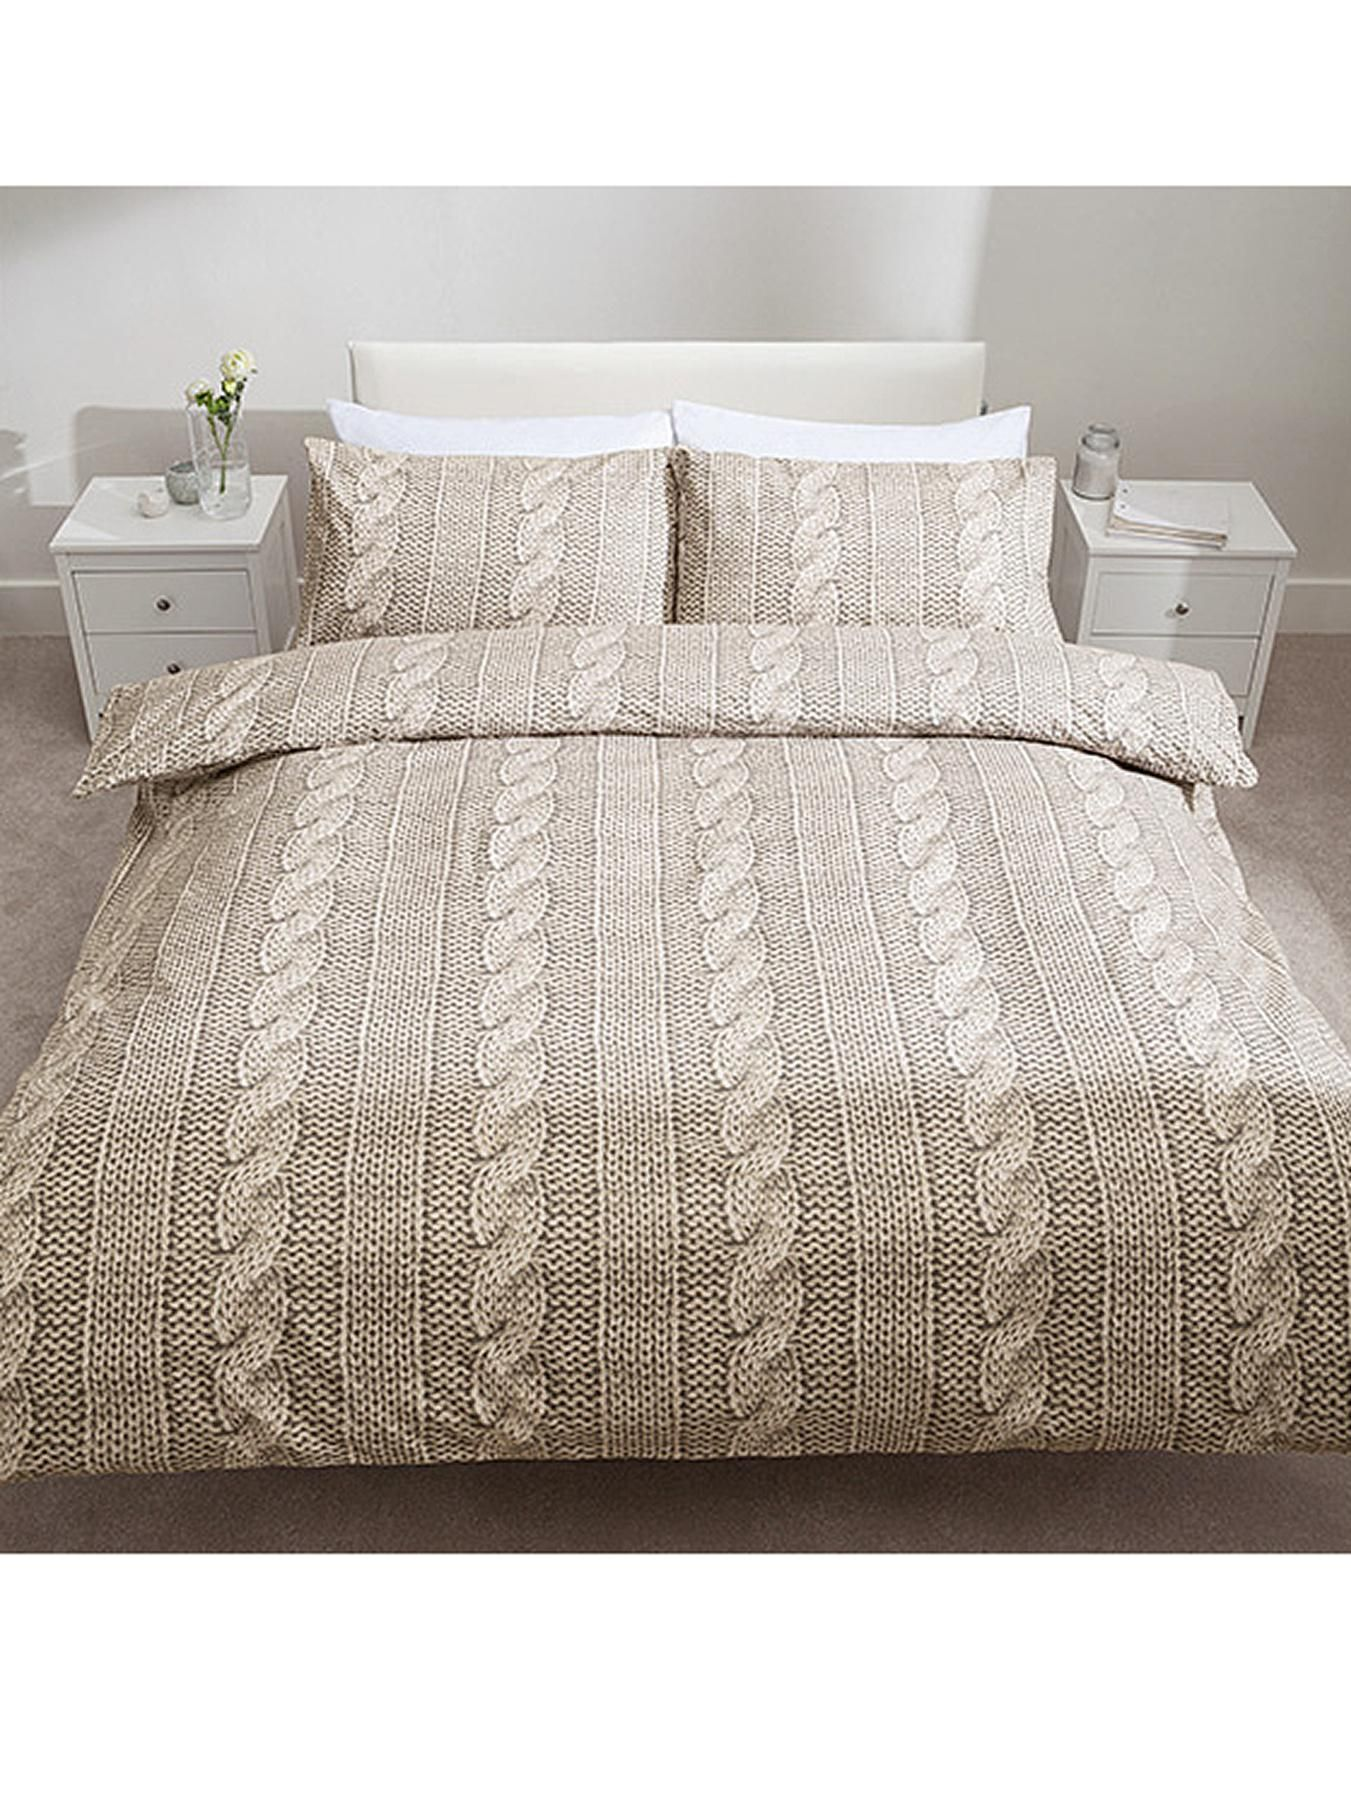 Catherine Lansfield So Soft Cable Knit Duvet Cover And Pillowcase Set Very Co